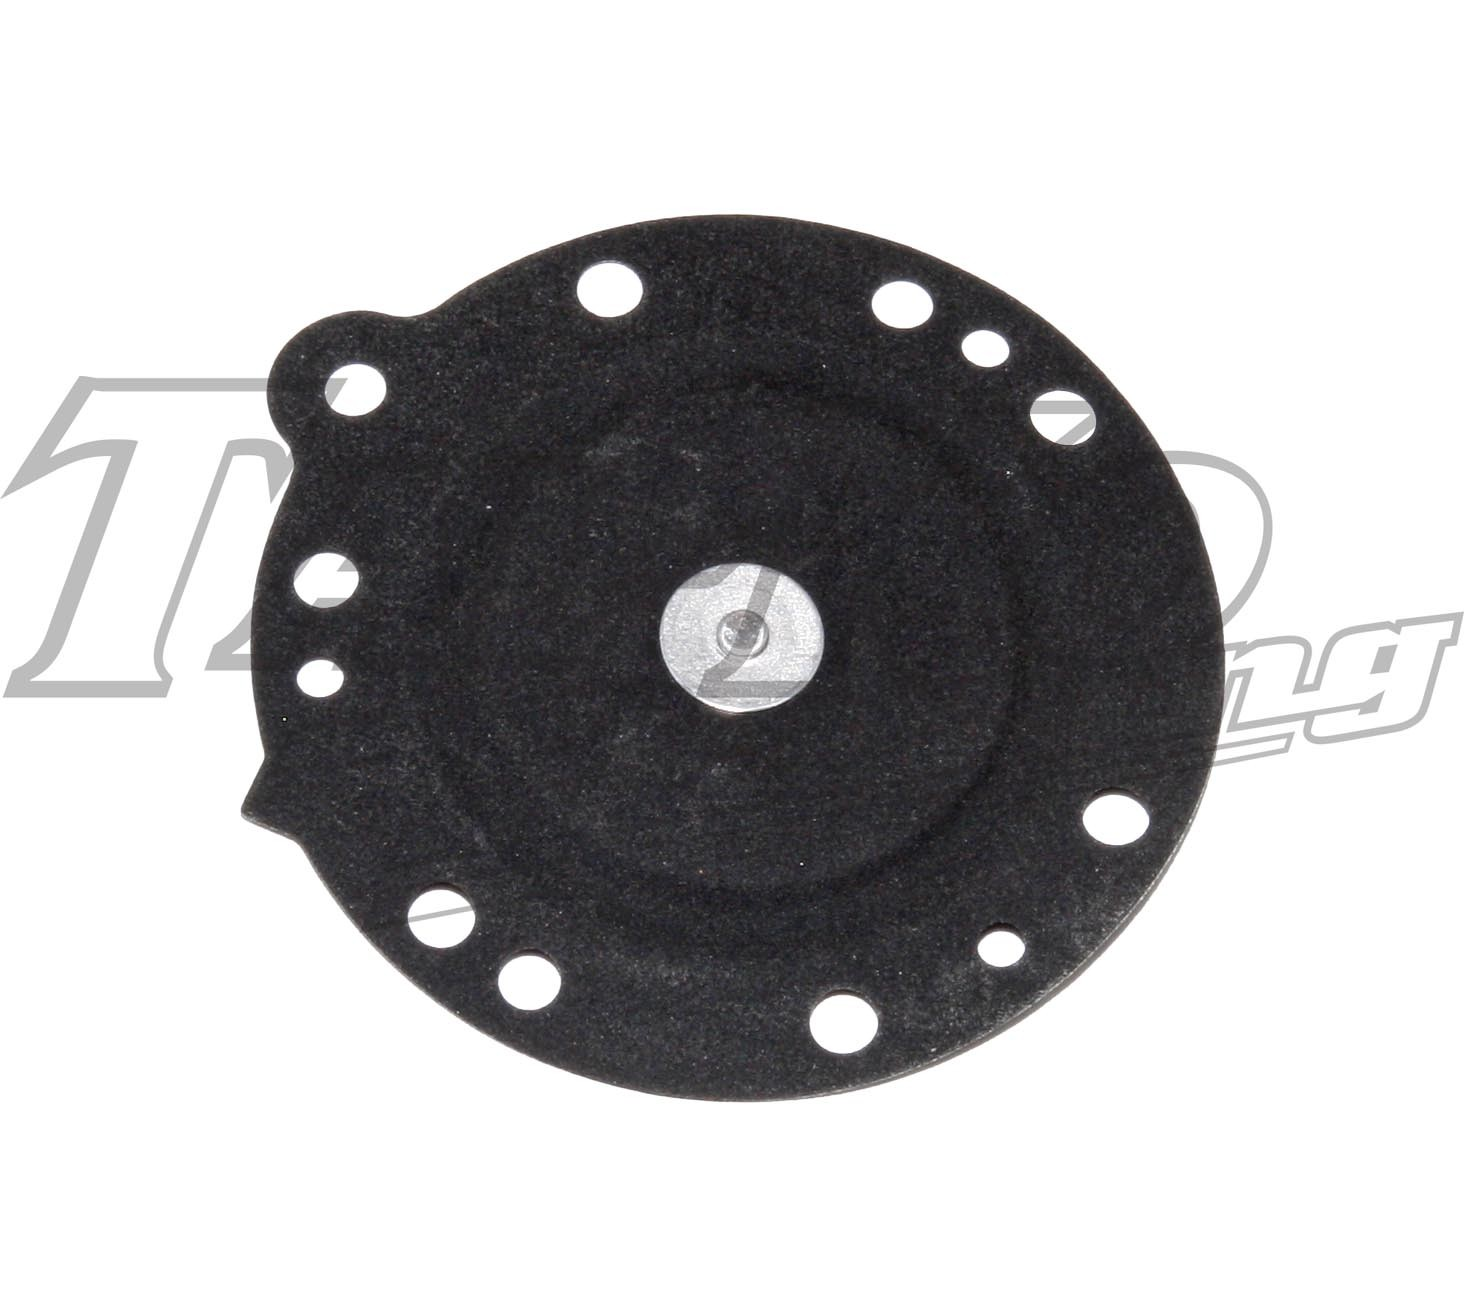 TILLOTSON CARB MAIN DIAPHRAGM